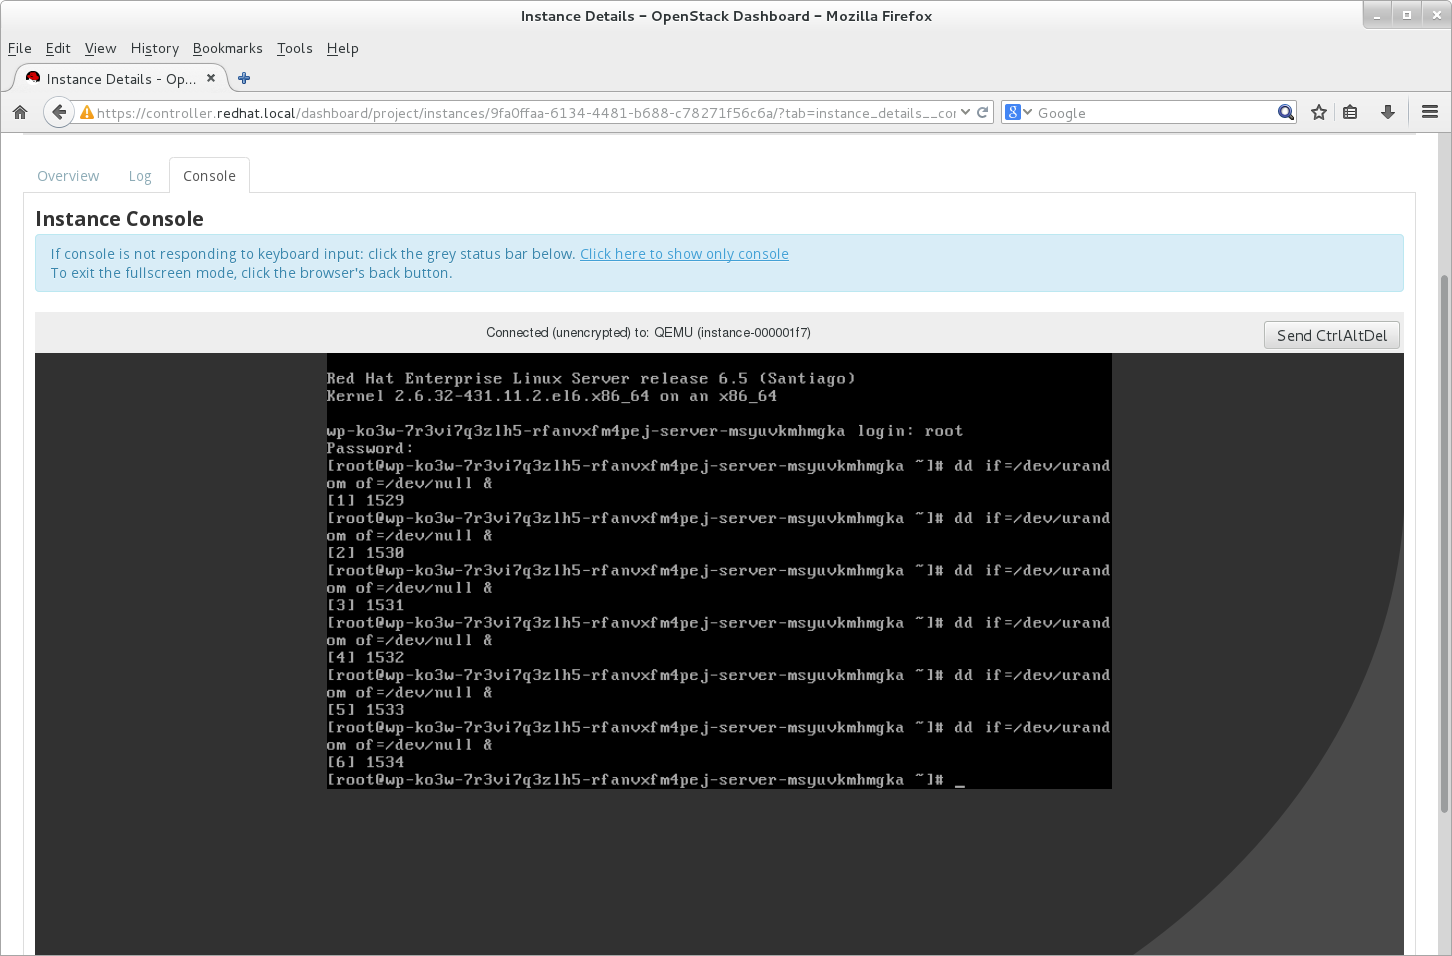 Autoscaling in OpenStack Using Heat and Ceilometer, part 2 | My Open ...